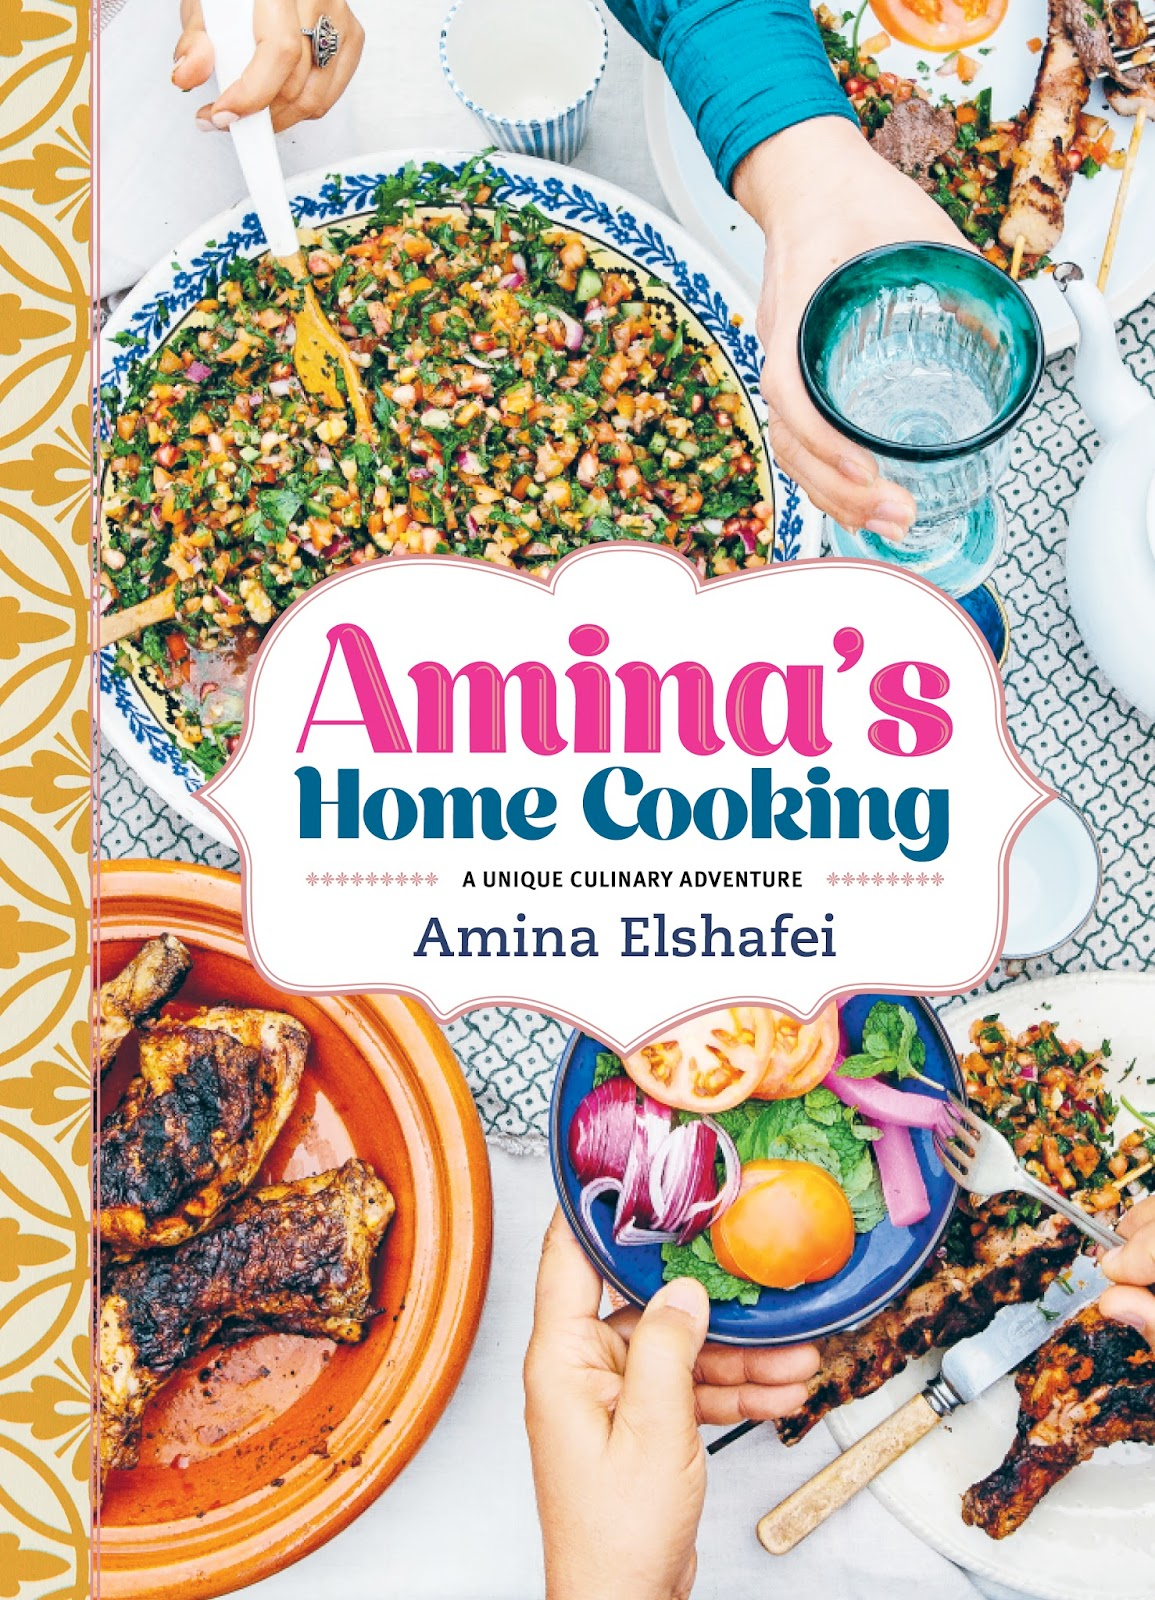 Roundup of great foodie books chocolates and snacks a glug of oil masterchef favorite amina elshafei is blessed with a rich family history her mum is korean and her dad is egyptian delicious recipes in the book include forumfinder Image collections